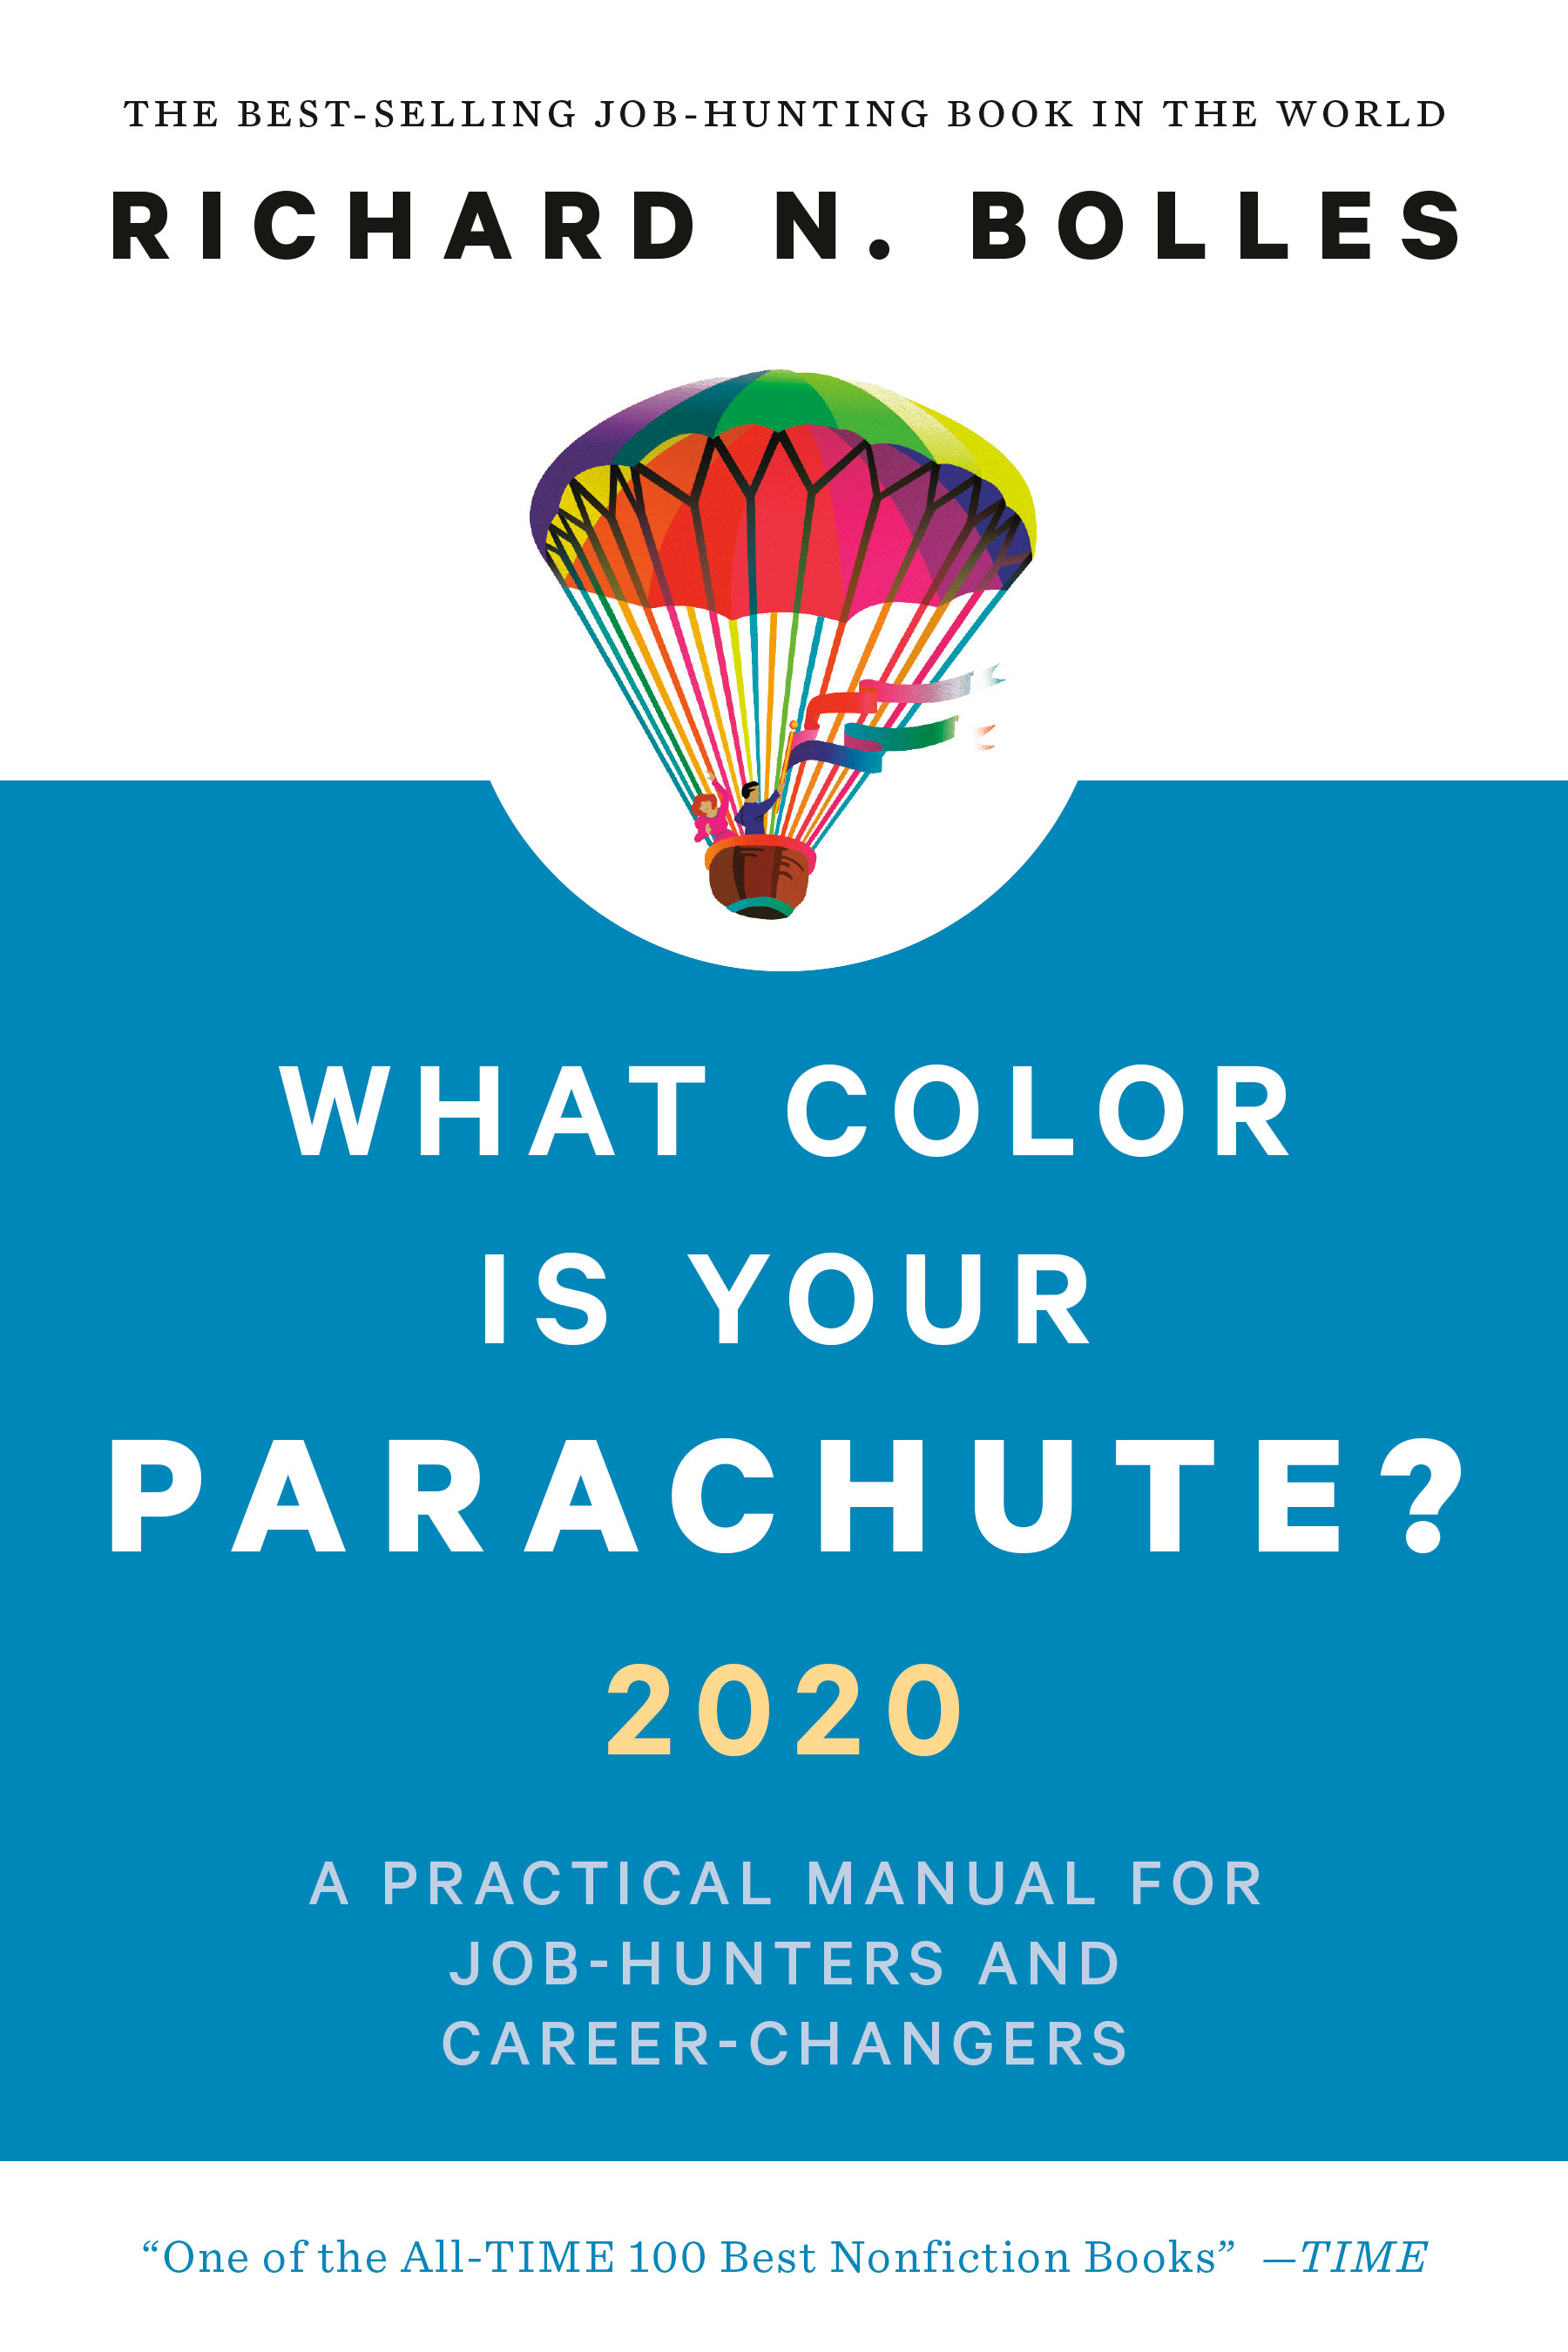 Best Seller Books 2020.What Color Is Your Parachute The 1 Best Selling Career